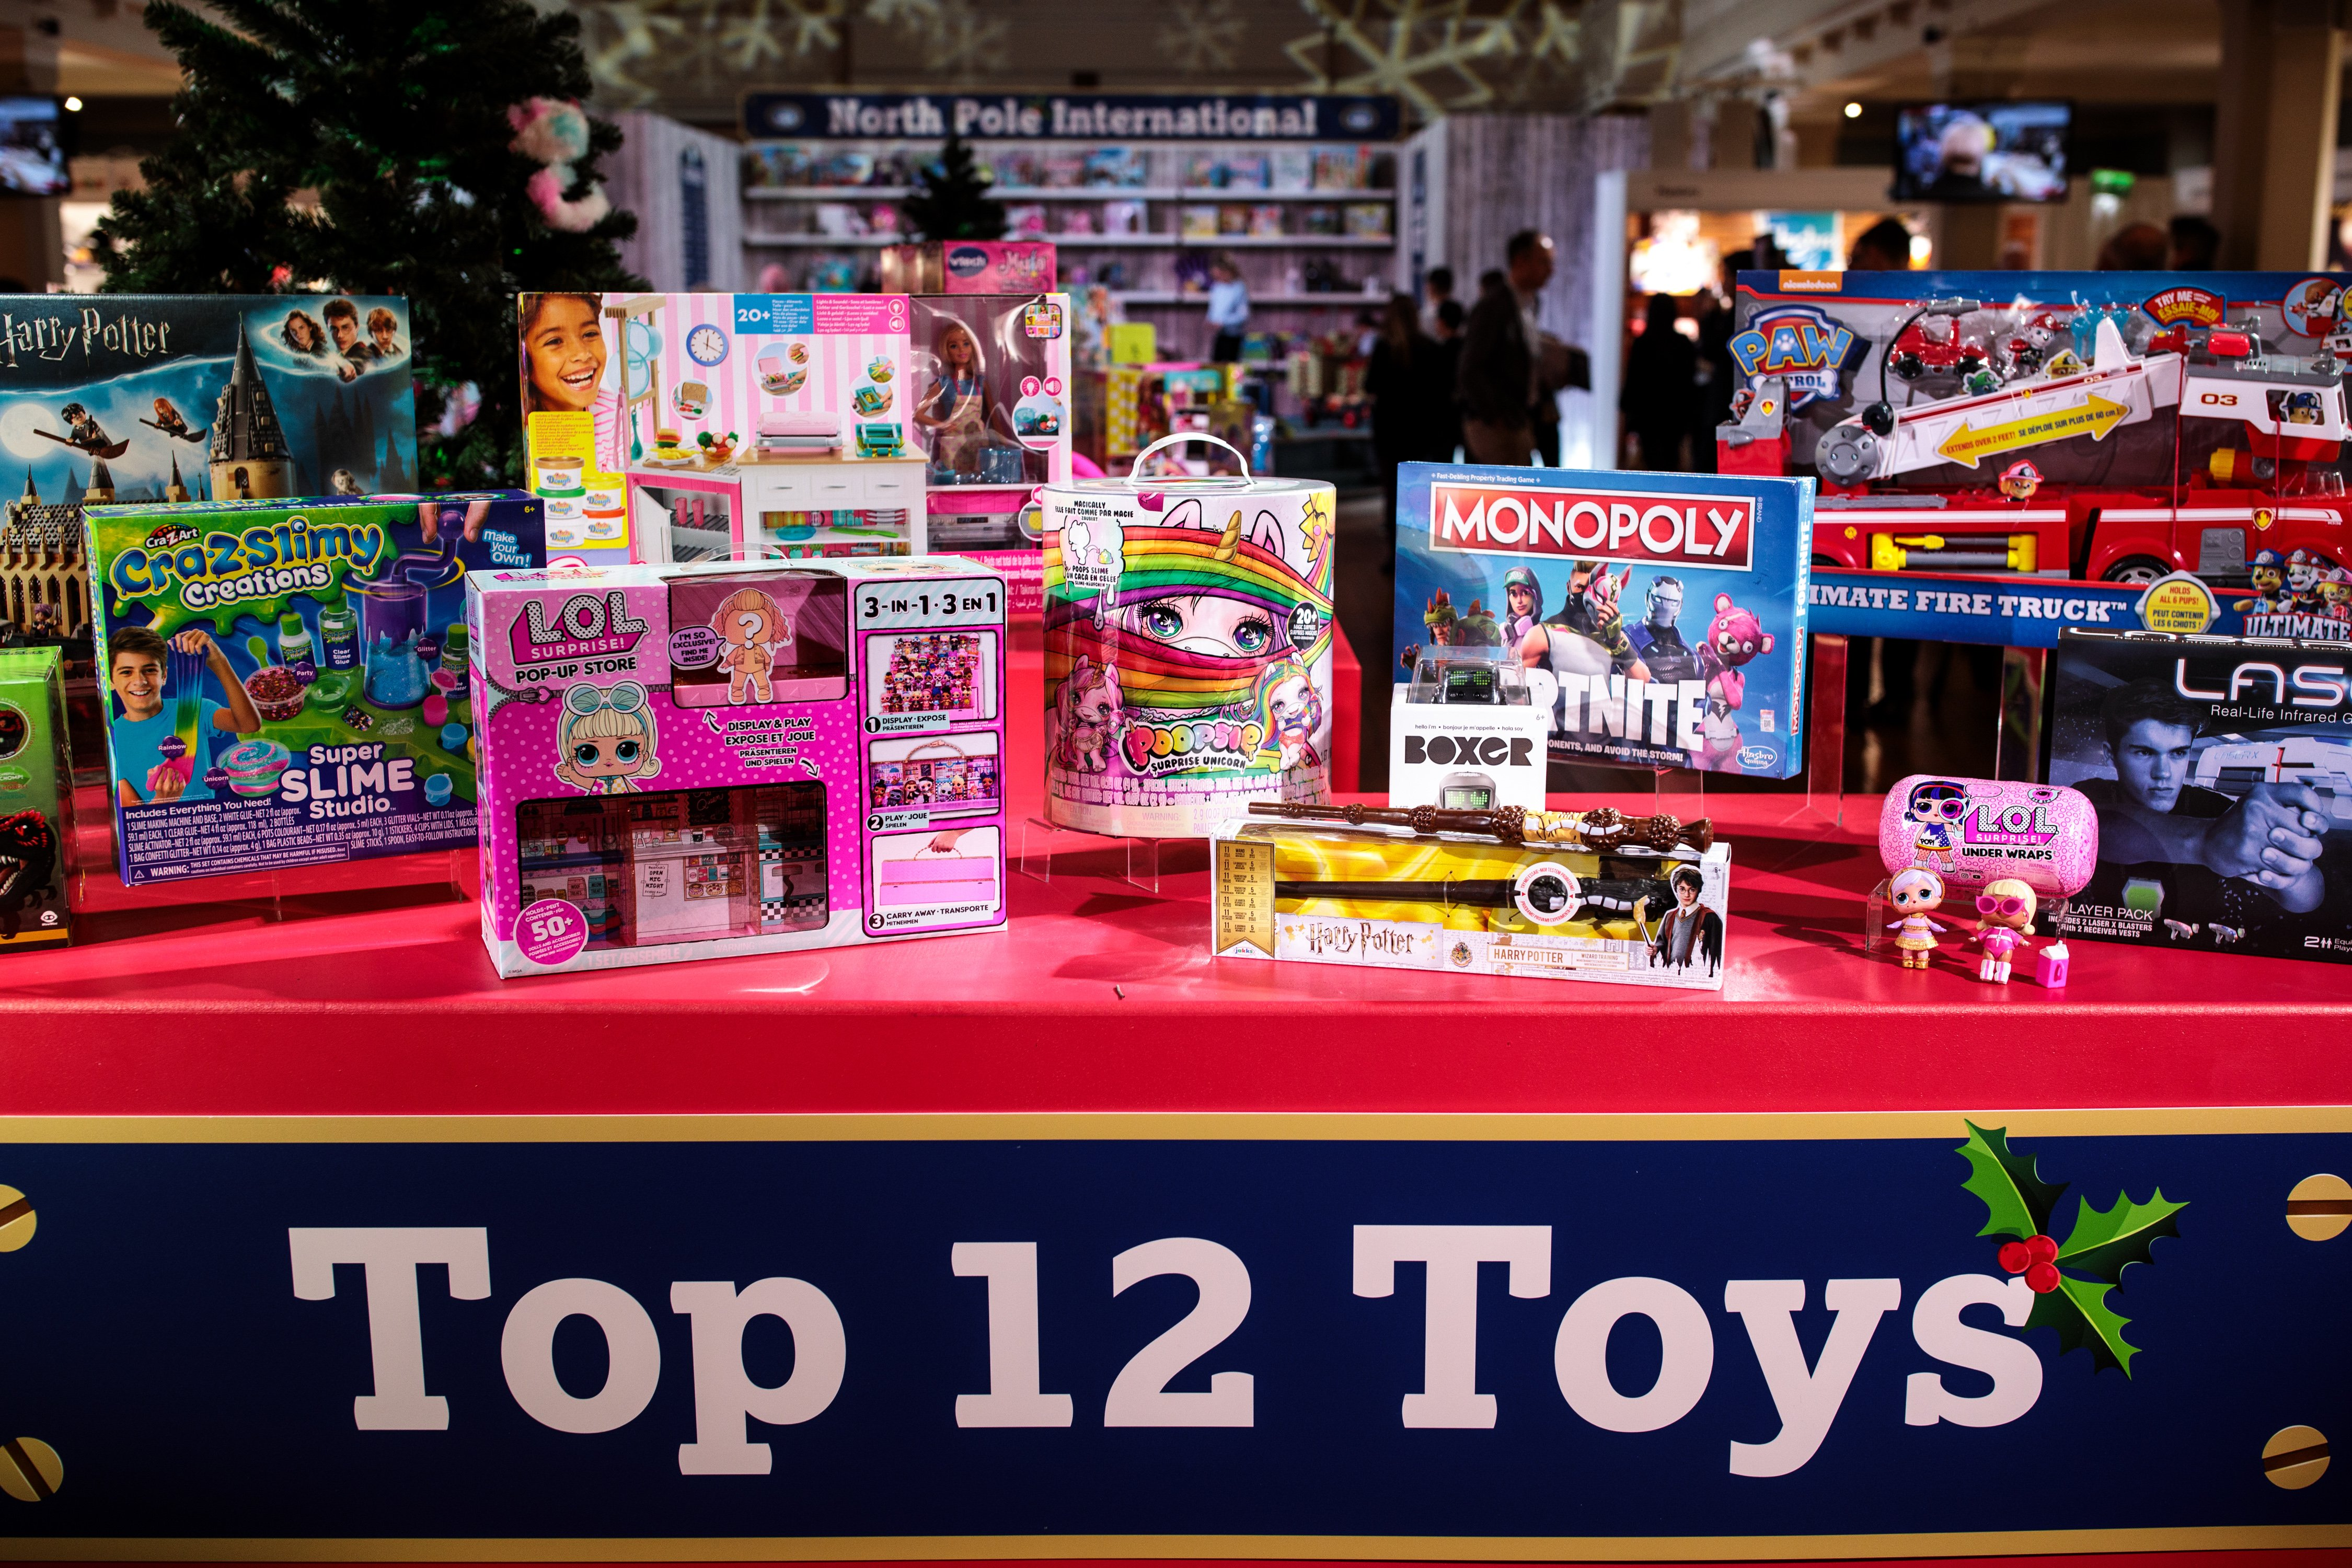 Top toys are displayed at a 'Dream Toys' event to unveil the top twelve toys this Christmas on November 14, 2018 in London, England. Jack Taylor/Getty Images